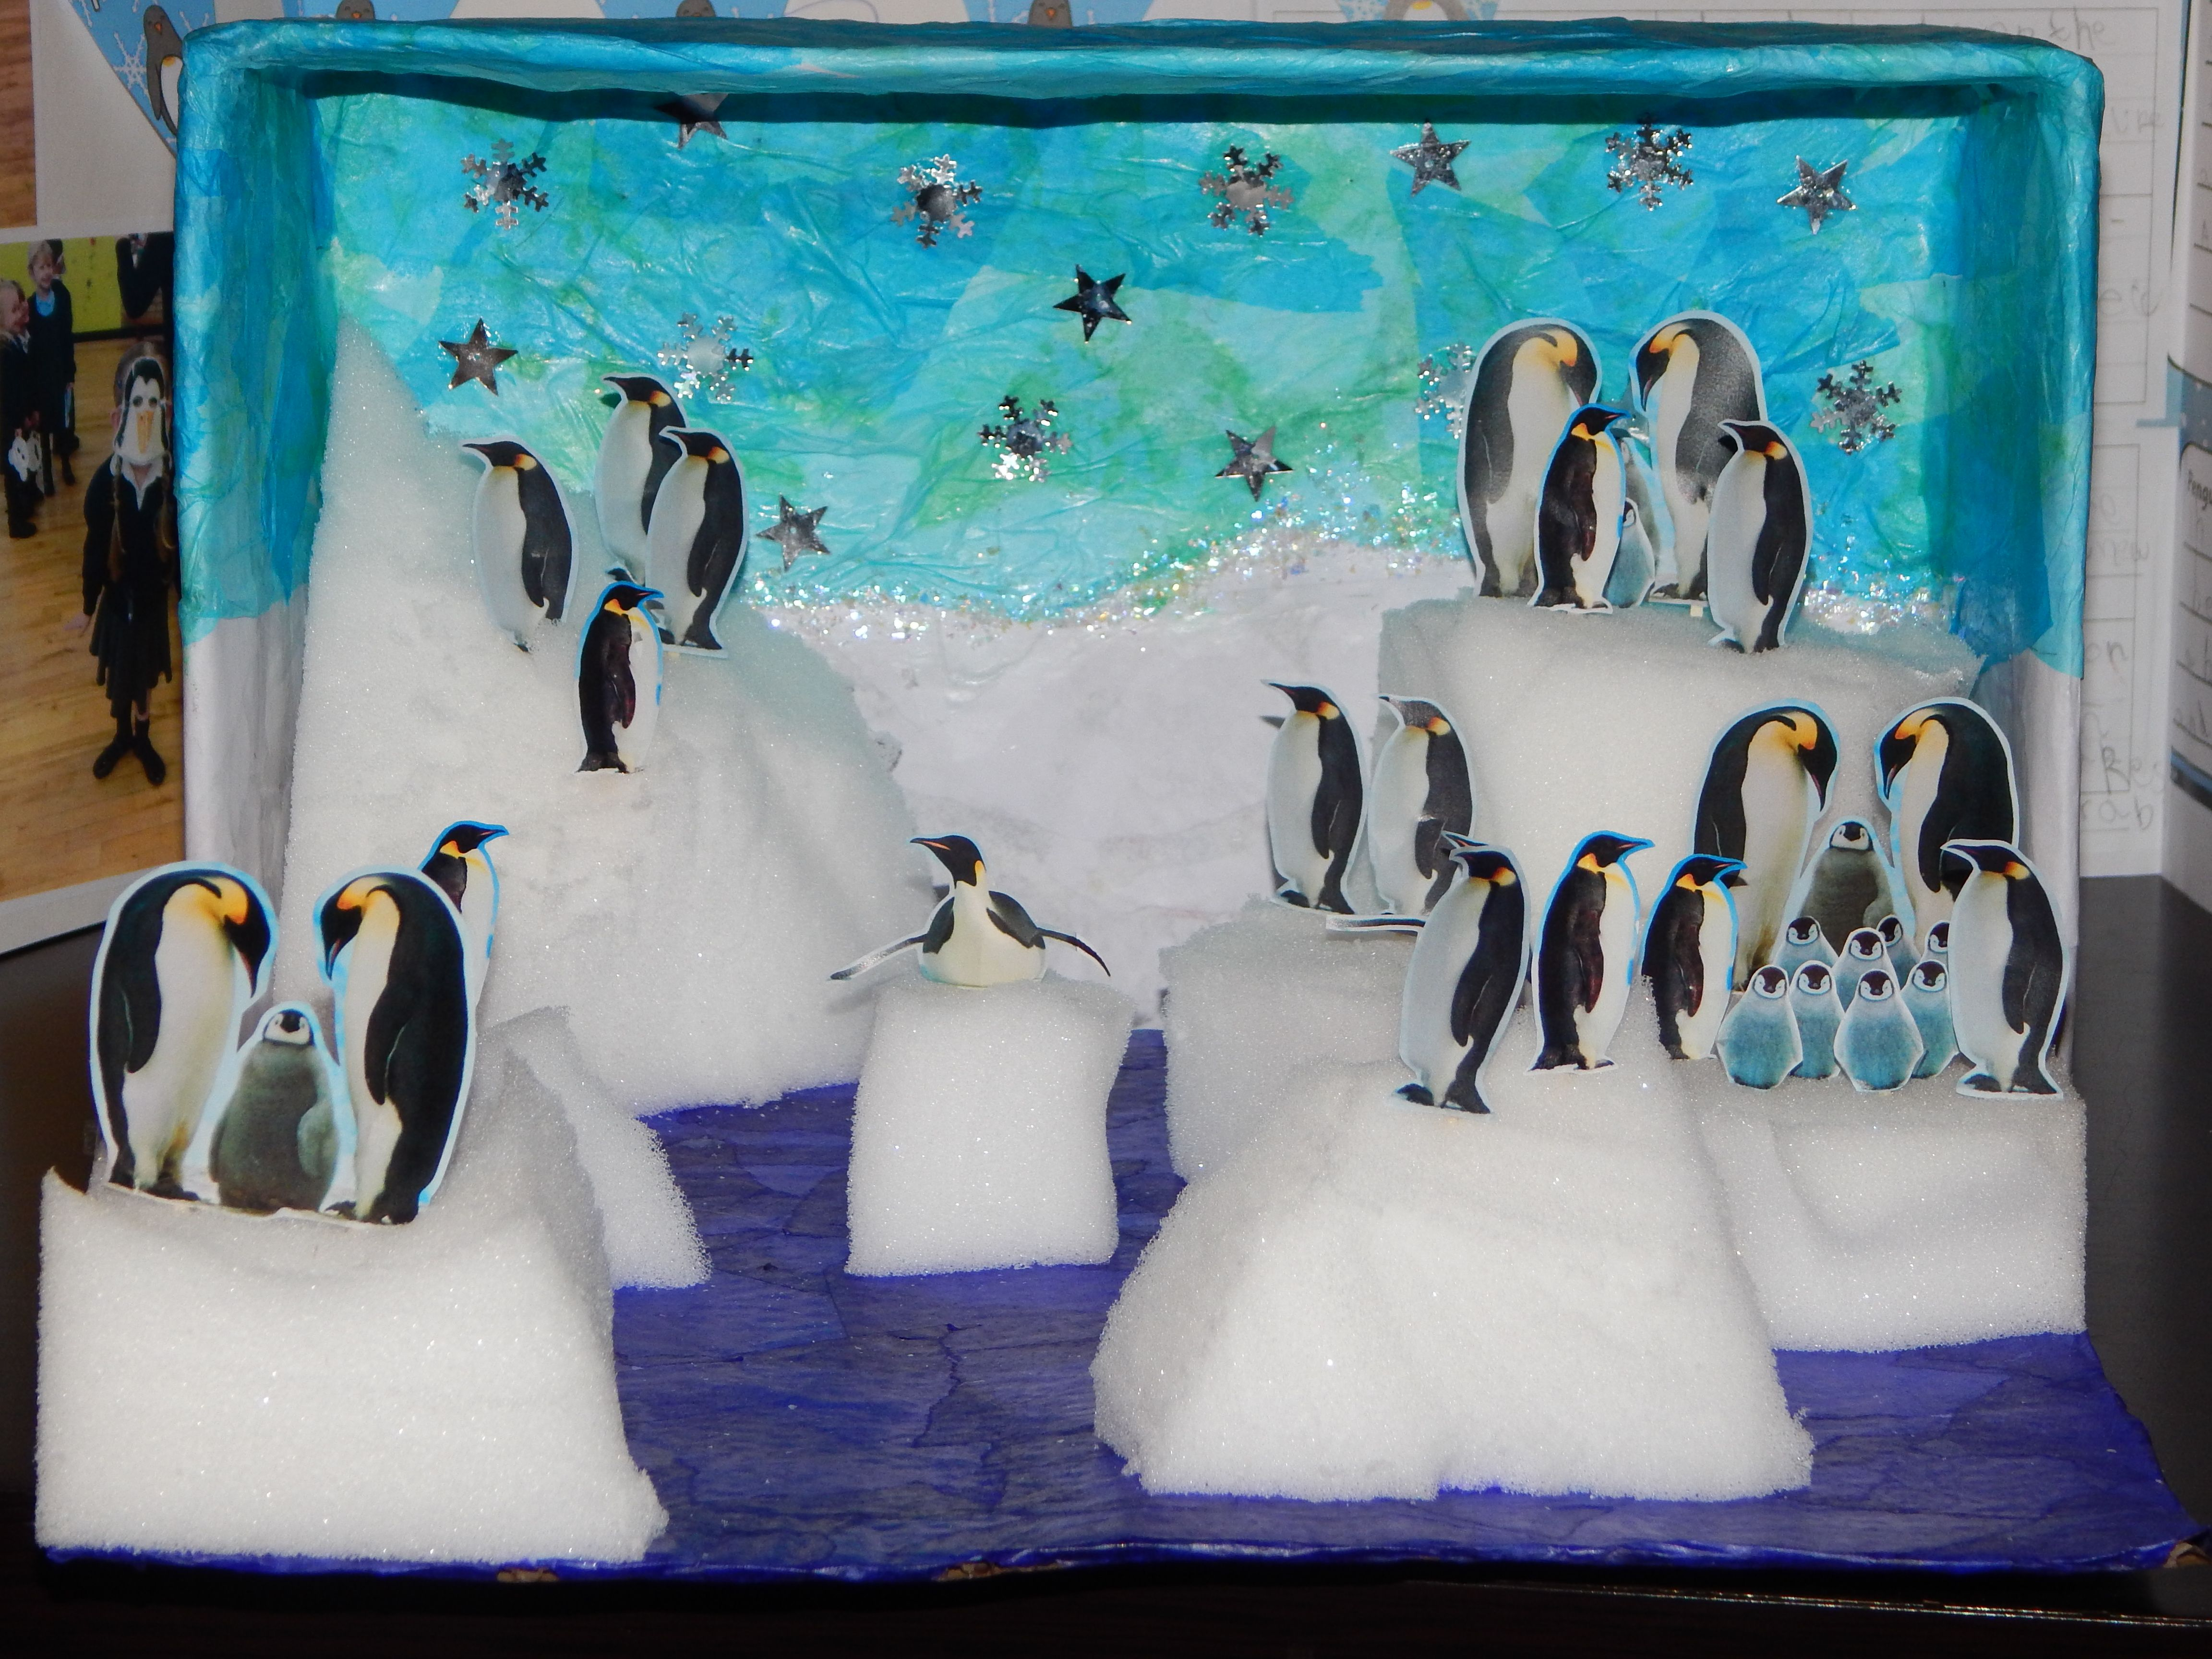 Penguin habitat diorama images for Penguin project